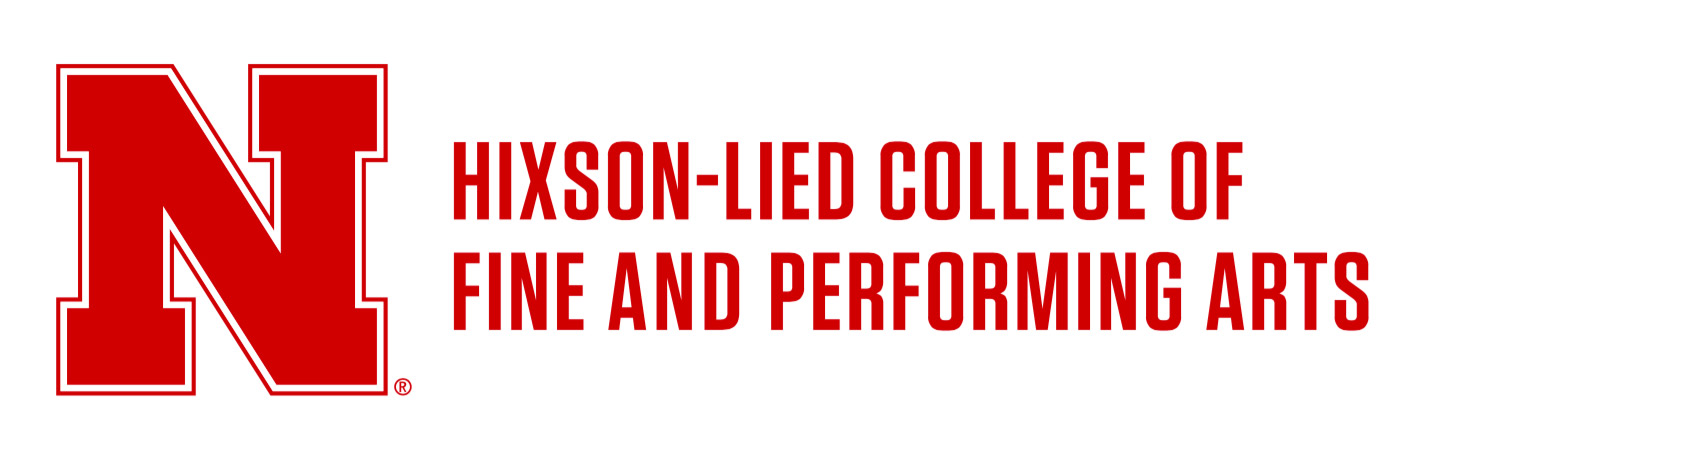 Horizontal lockup - Hixson-Lied College of Fine and Performing Arts